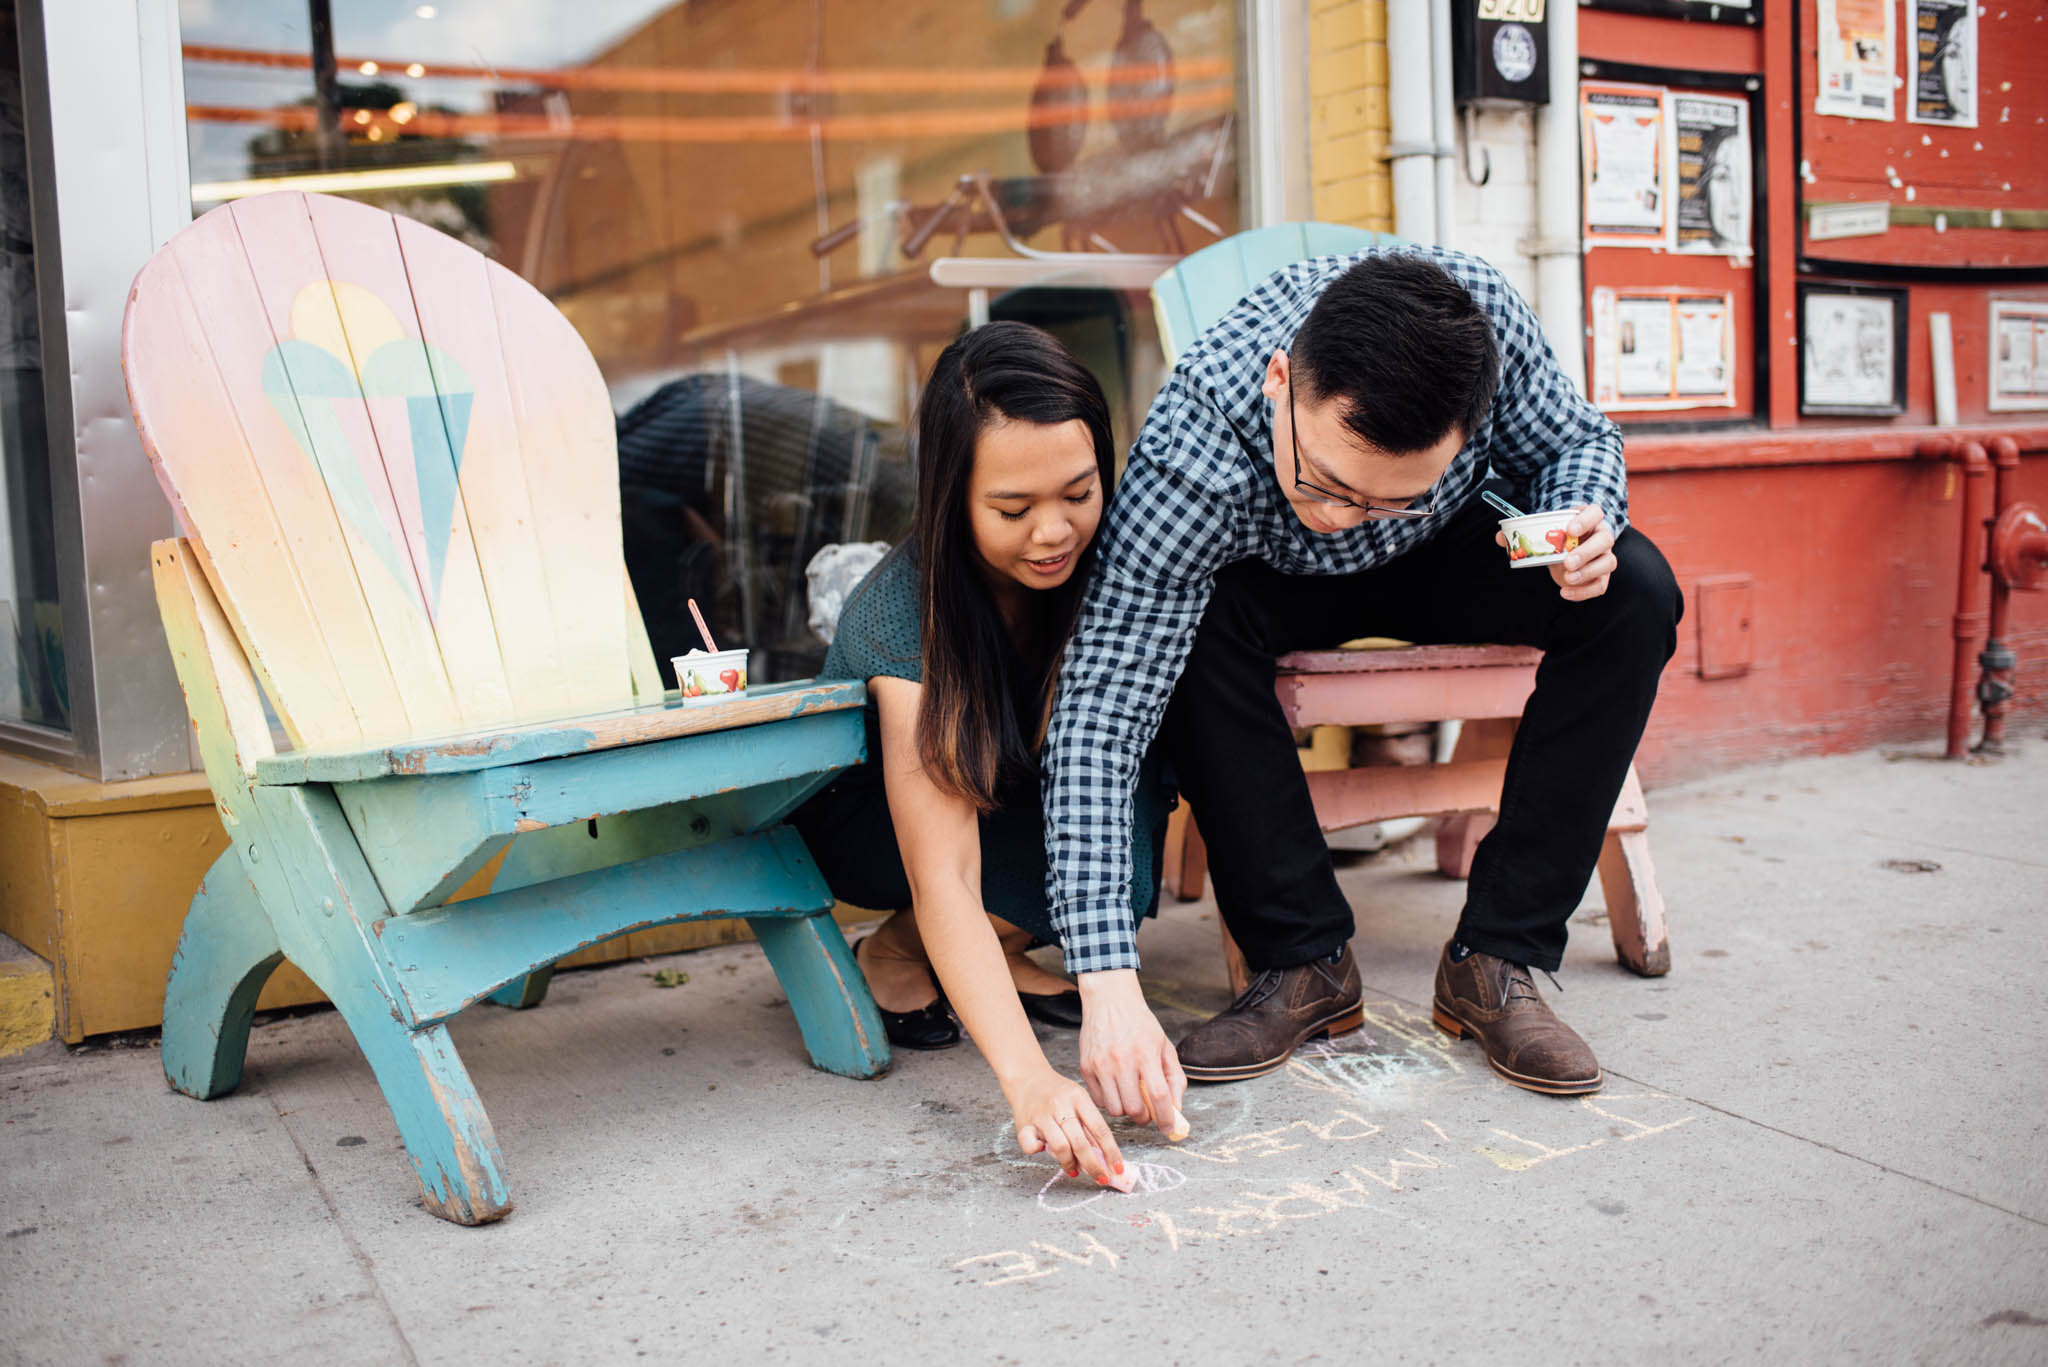 Ed's Ice Cream Engagement Photos | Olive Photography Toronto